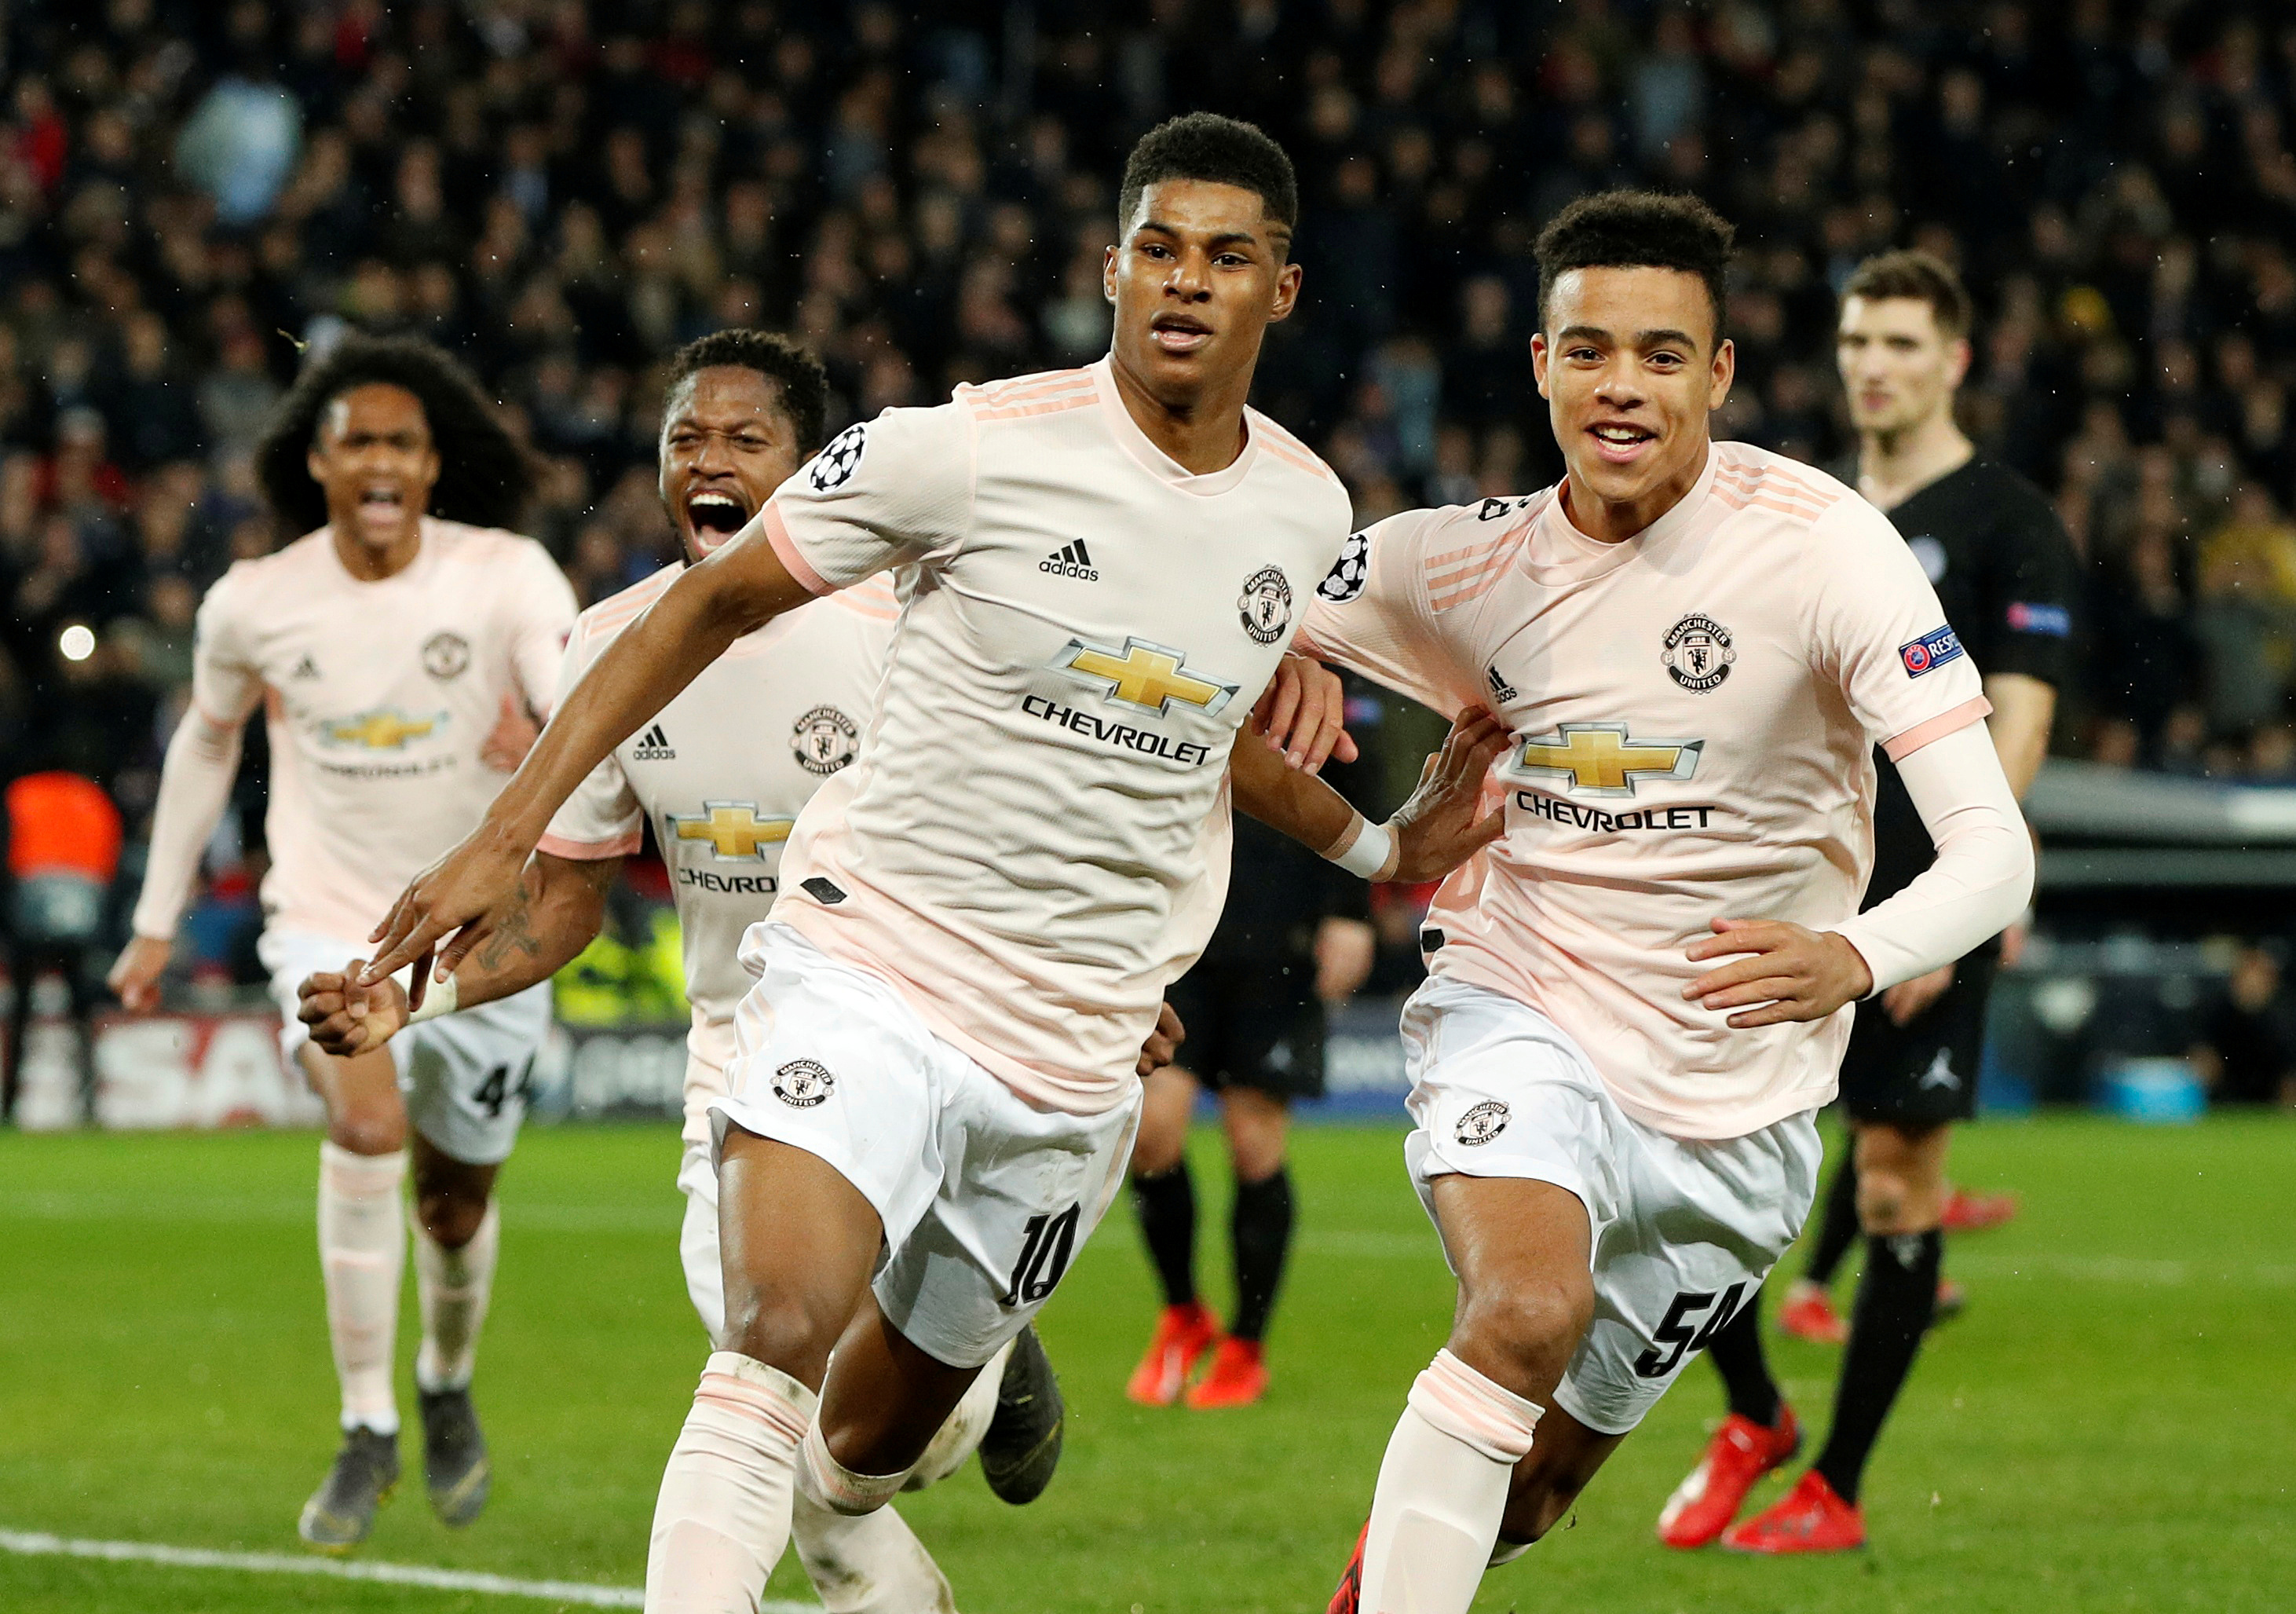 Man Utd could have Champions League fixtures reversed - UEFA | The